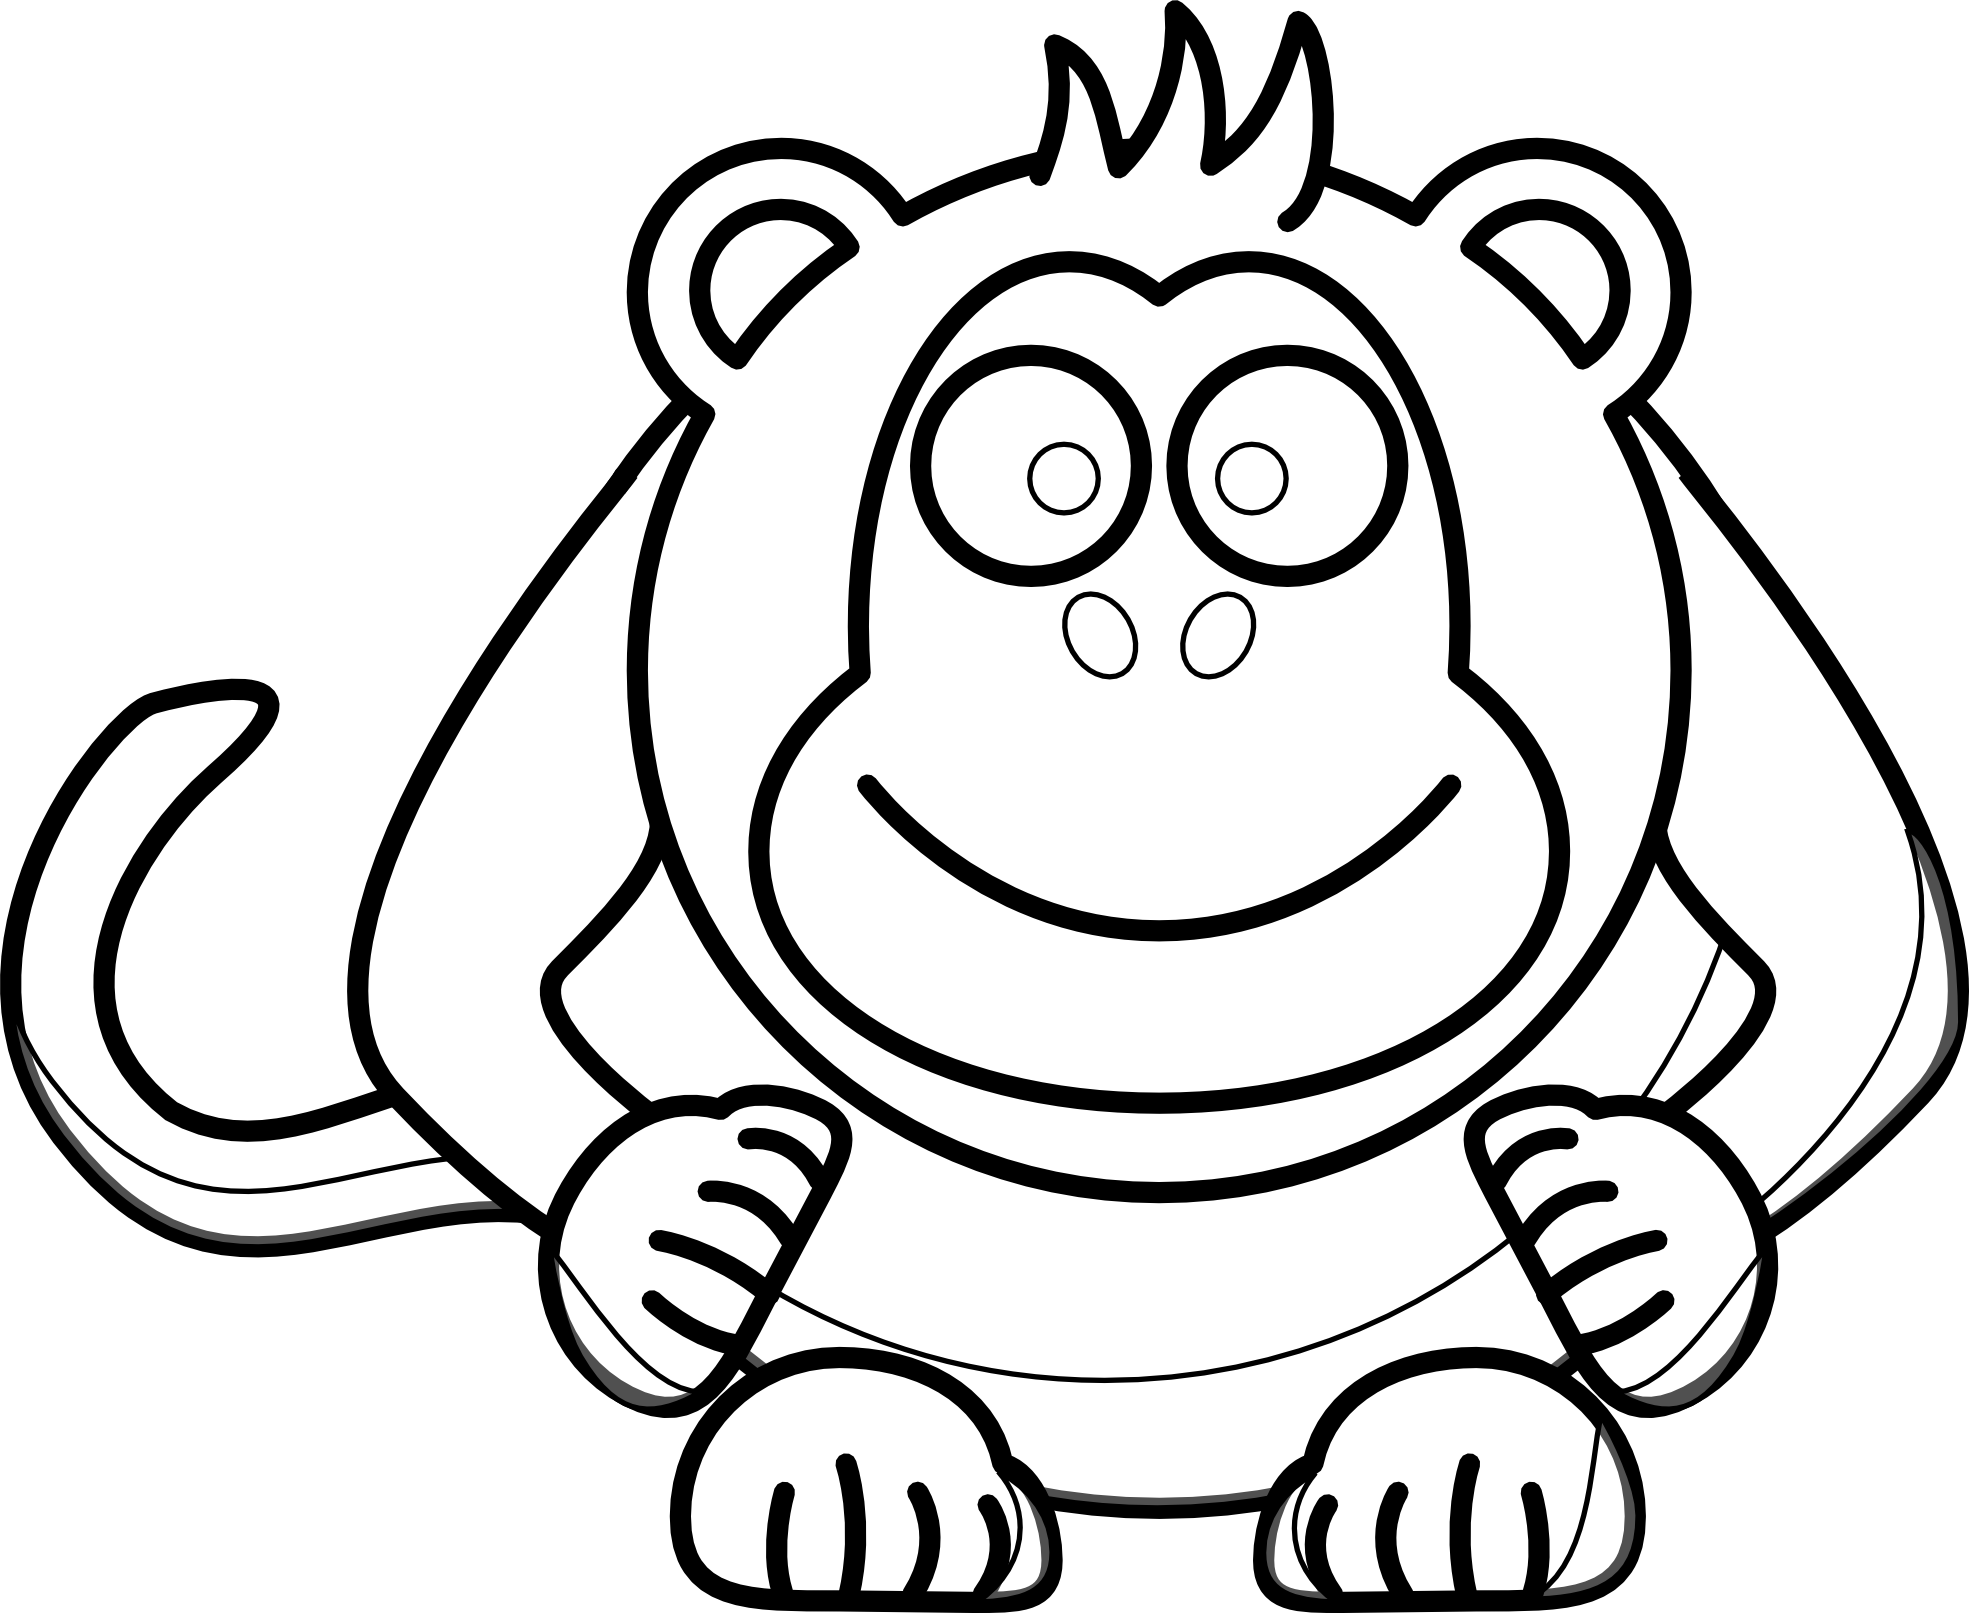 Chimp drawing simple. Monkey face at getdrawings